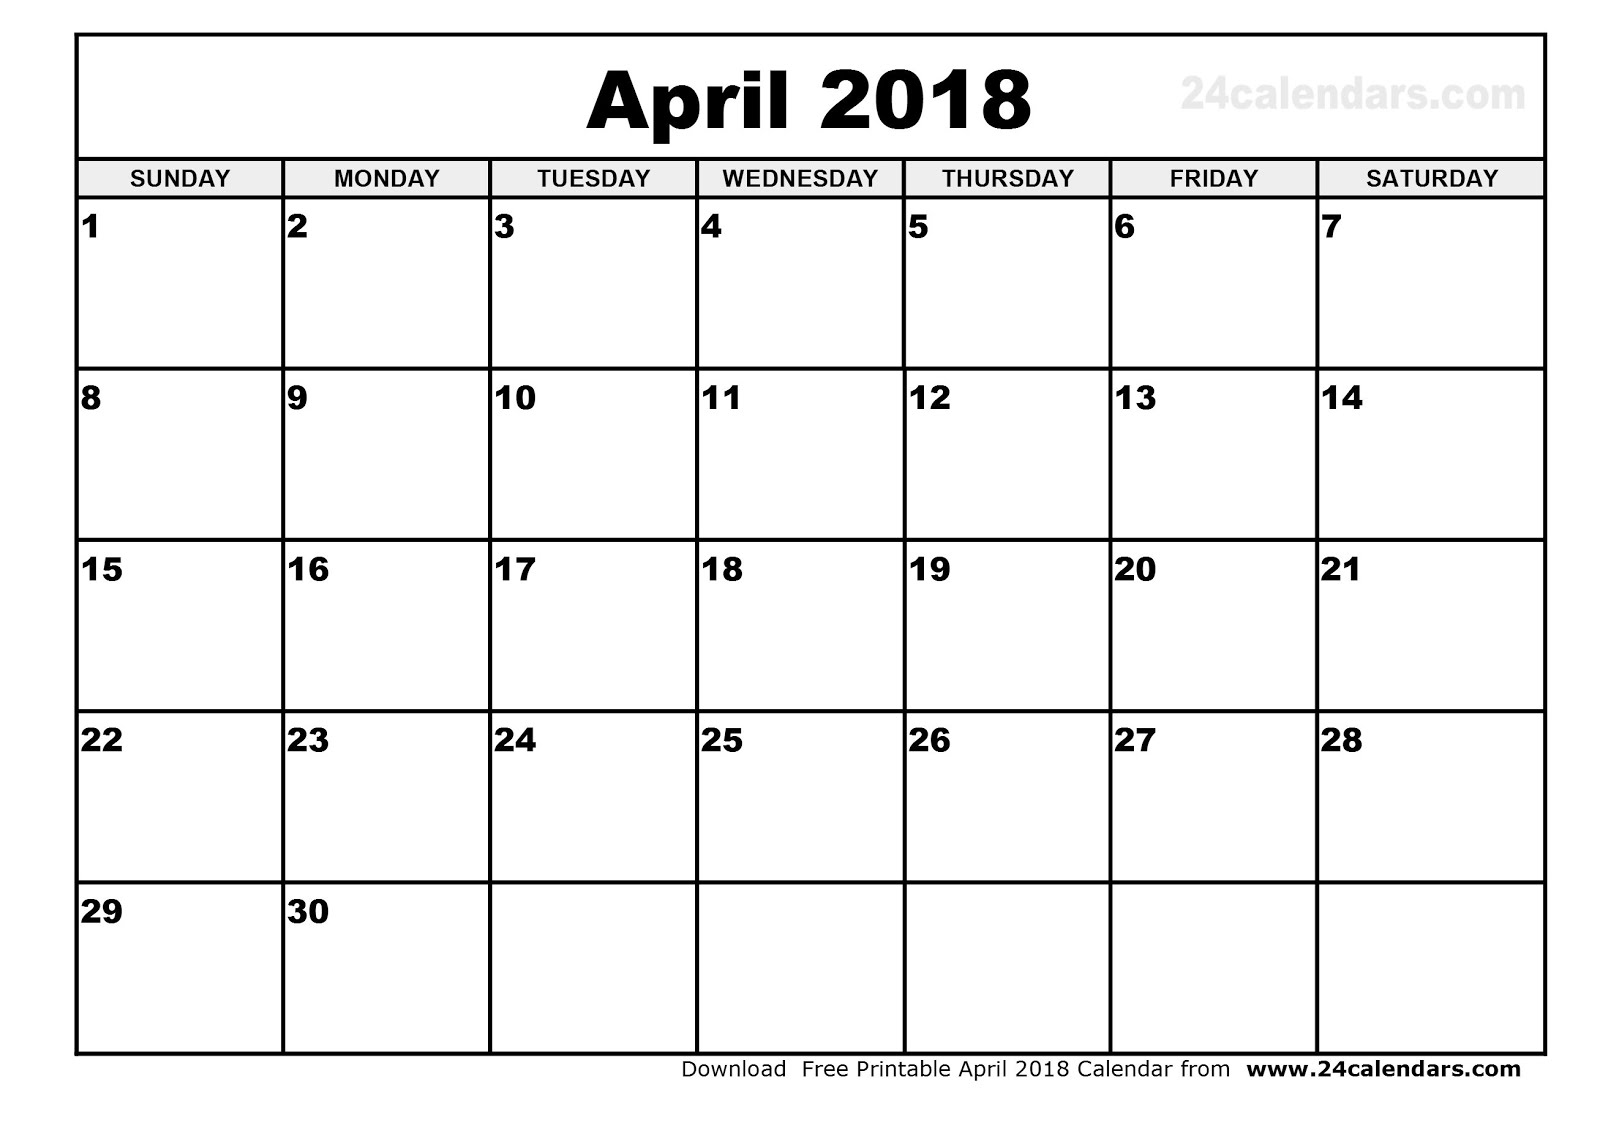 Calendar Layout April : Printable calendar free april